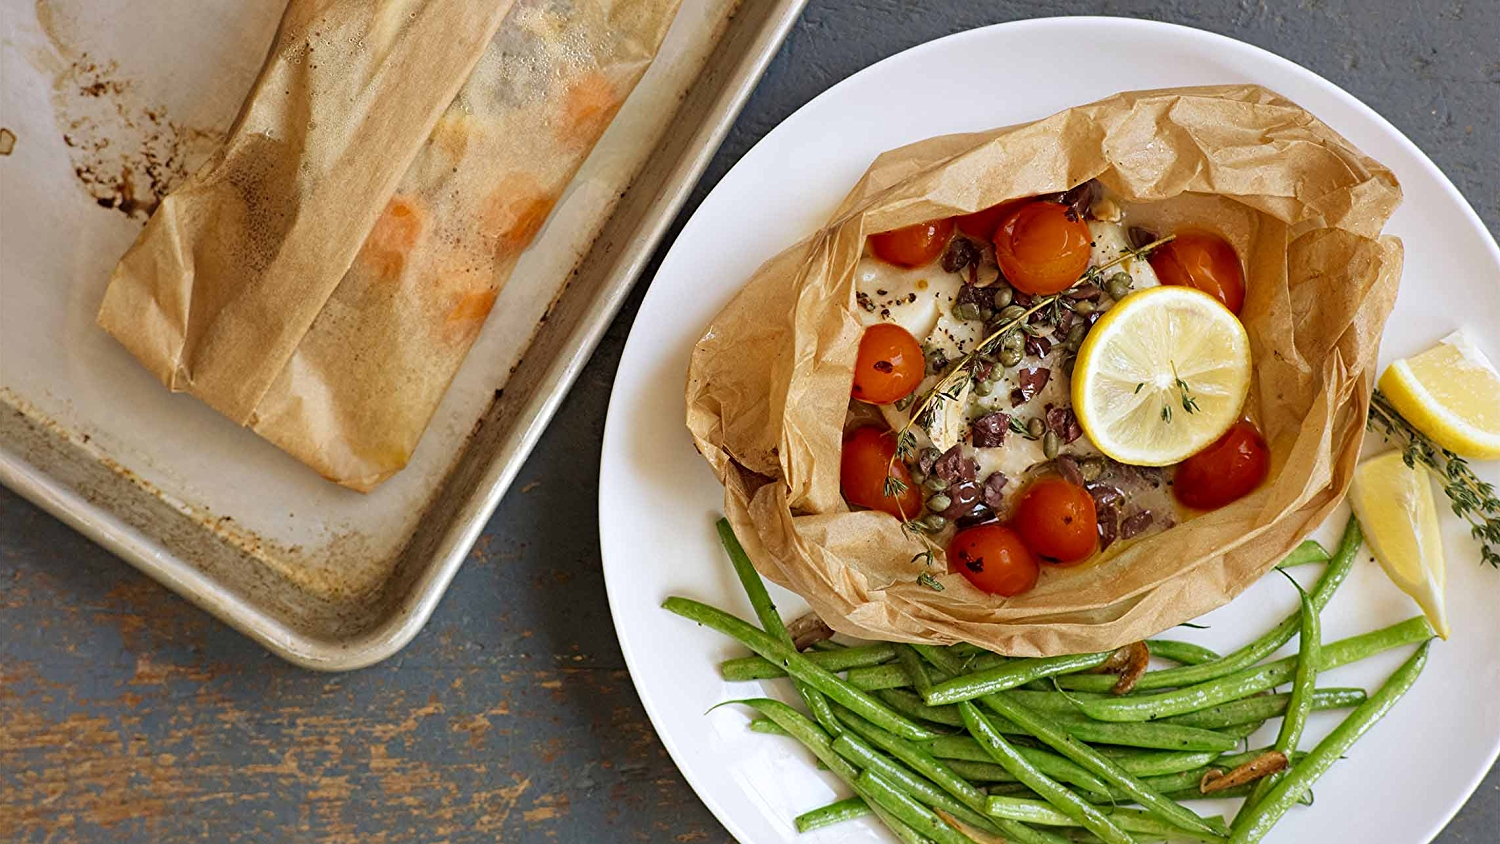 Image of halibut in parchment paper.